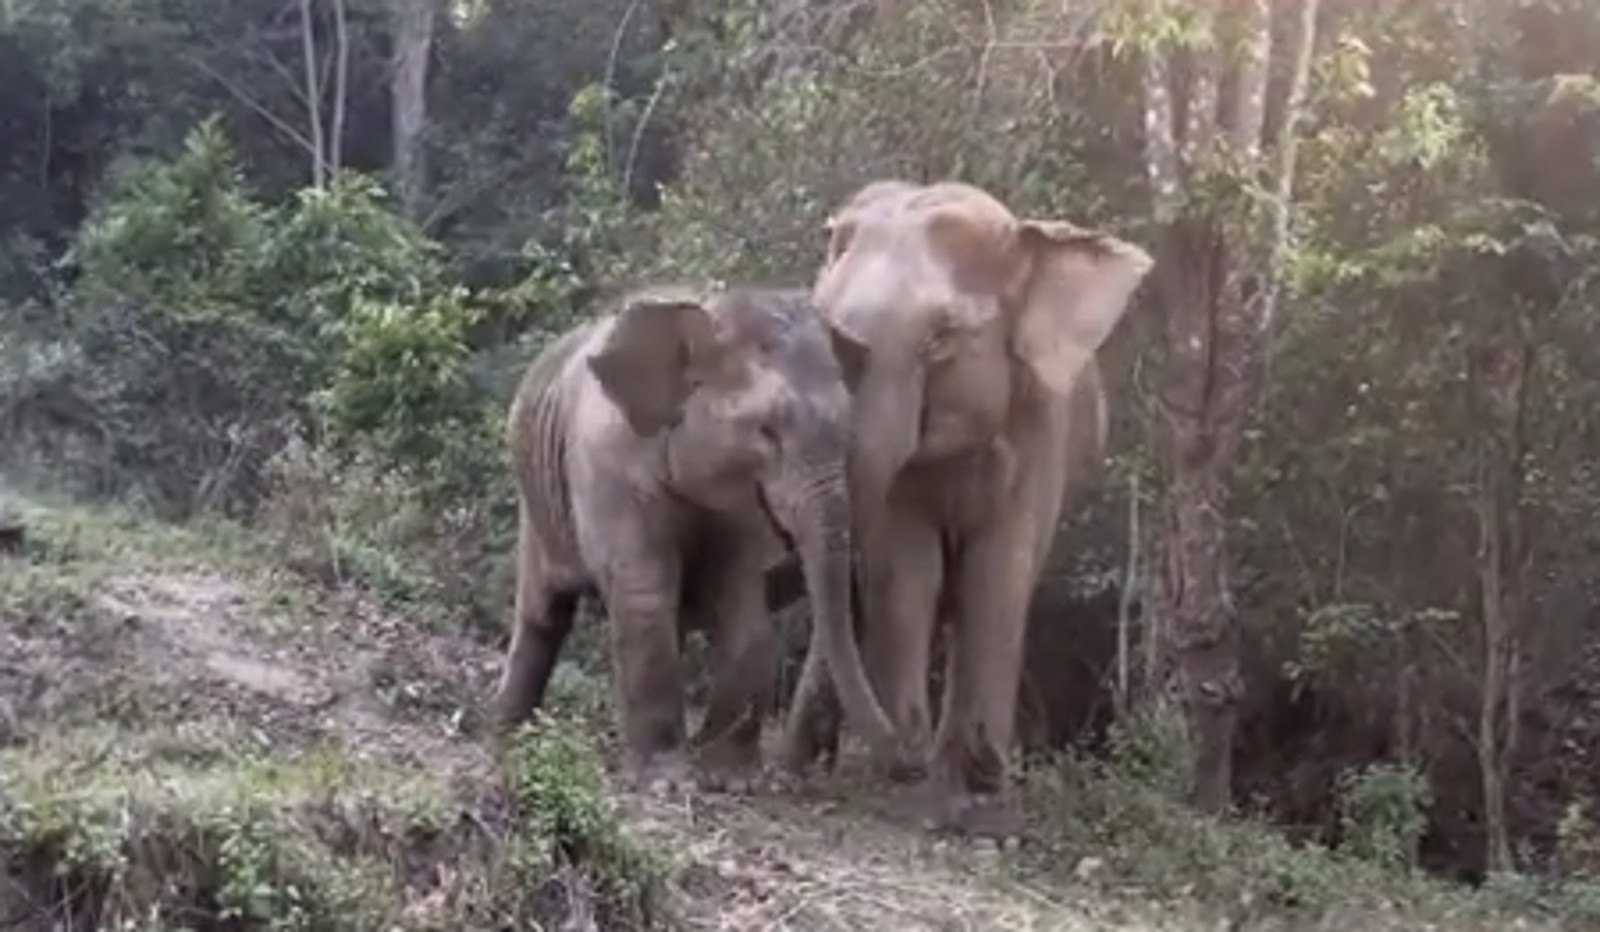 onegreenplanet.org - Baby Elephant Reunited With Mother After Being Separated by the Tourism Industry for 3 Years! (VIDEO)